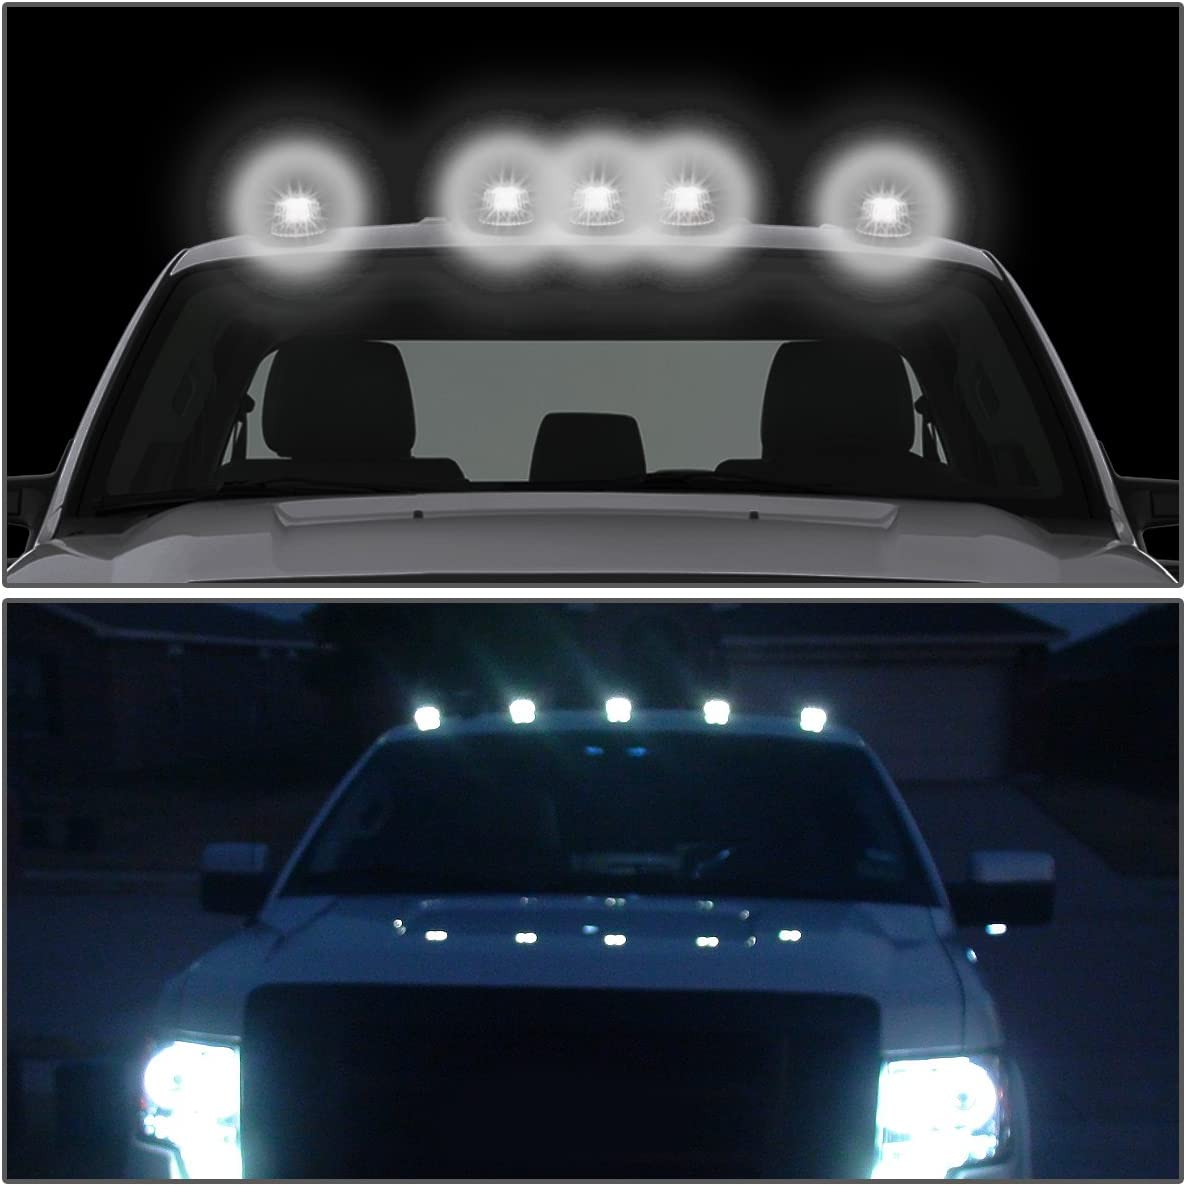 DNA Motoring CBL-F15080-BK-W LED Cab Roof Top Marker Lights X 5 with Wiring with Switch